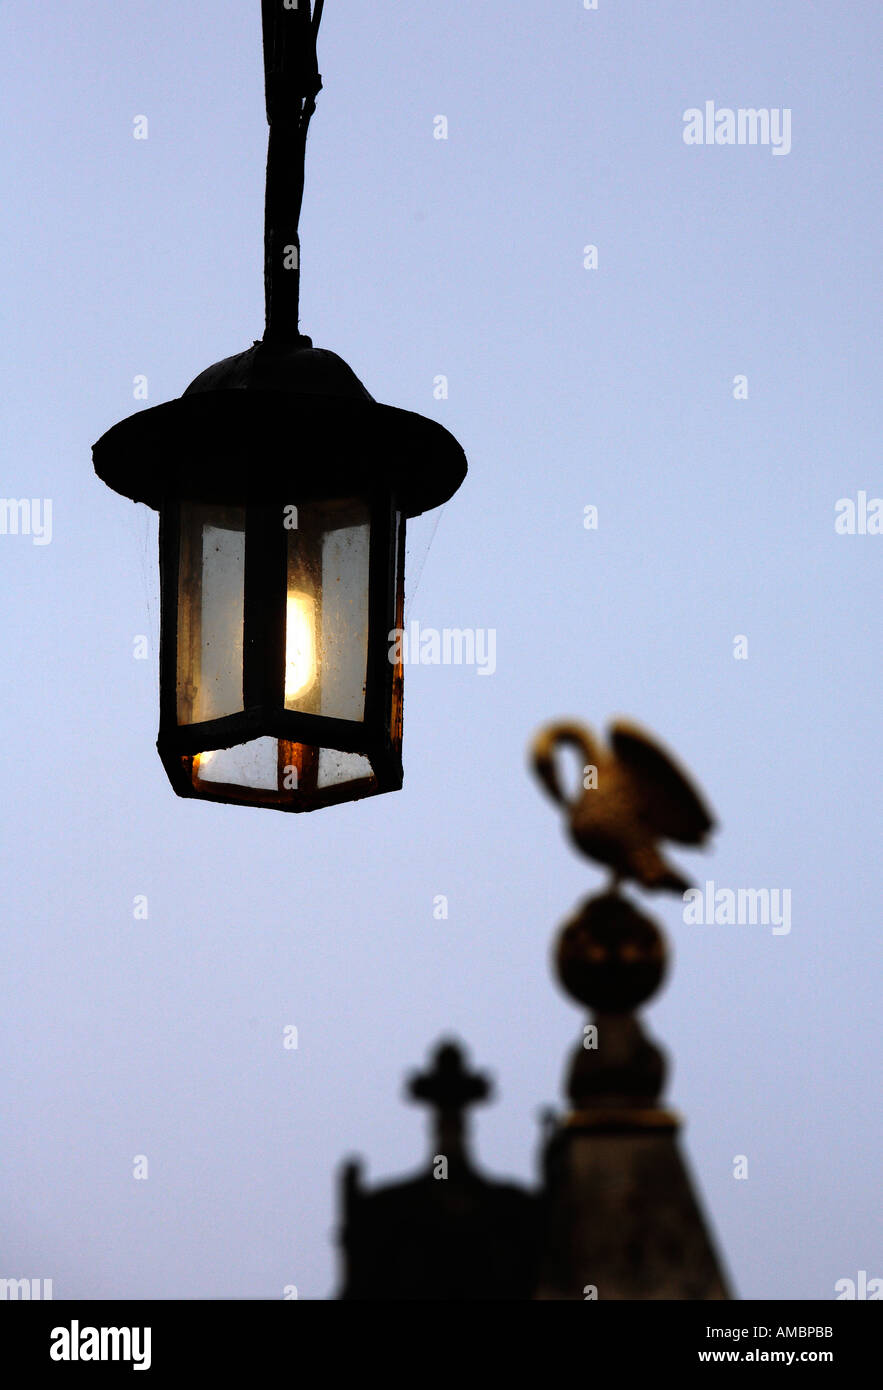 Lamp and swan at Corpus Christi College Oxford - Stock Image